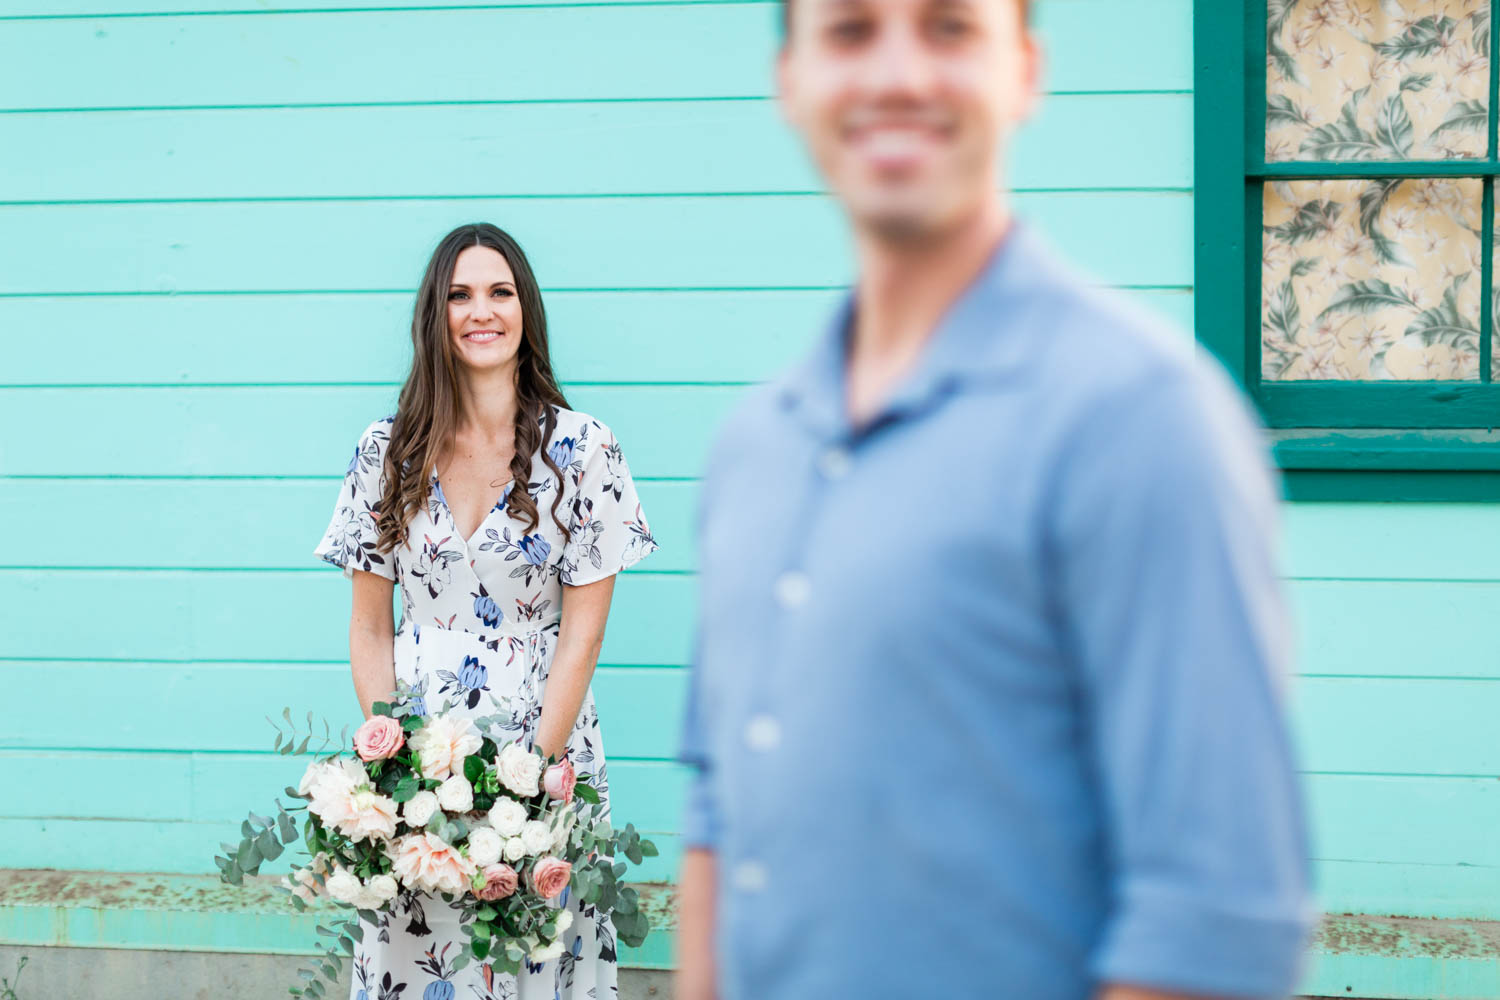 Compass Floral engagement bouquet for Newport Beach Engagement Photos at The Beachcomber by Cavin Elizabeth Photography